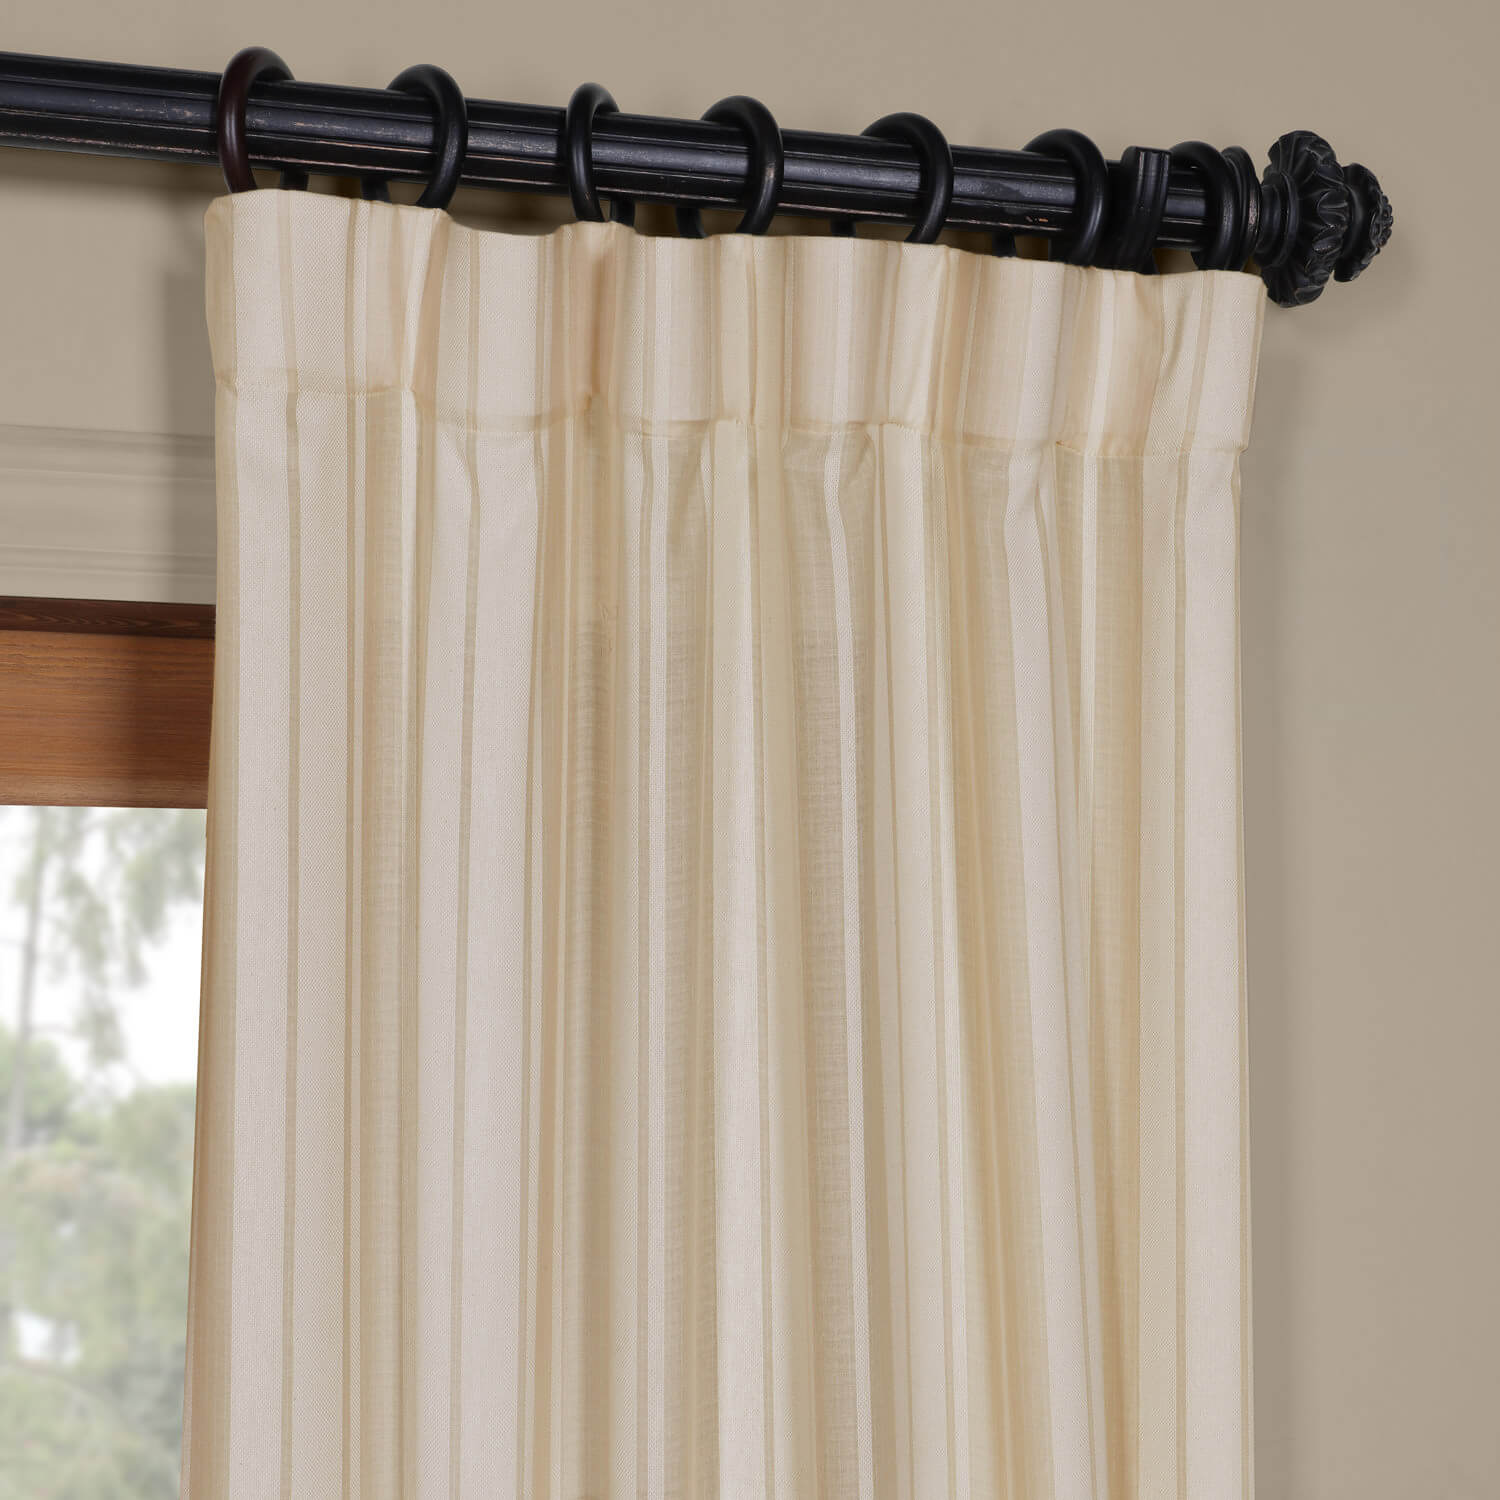 Linen Stripe Kitchen Curtains: Cayman Natural Striped Linen Sheer Curtain